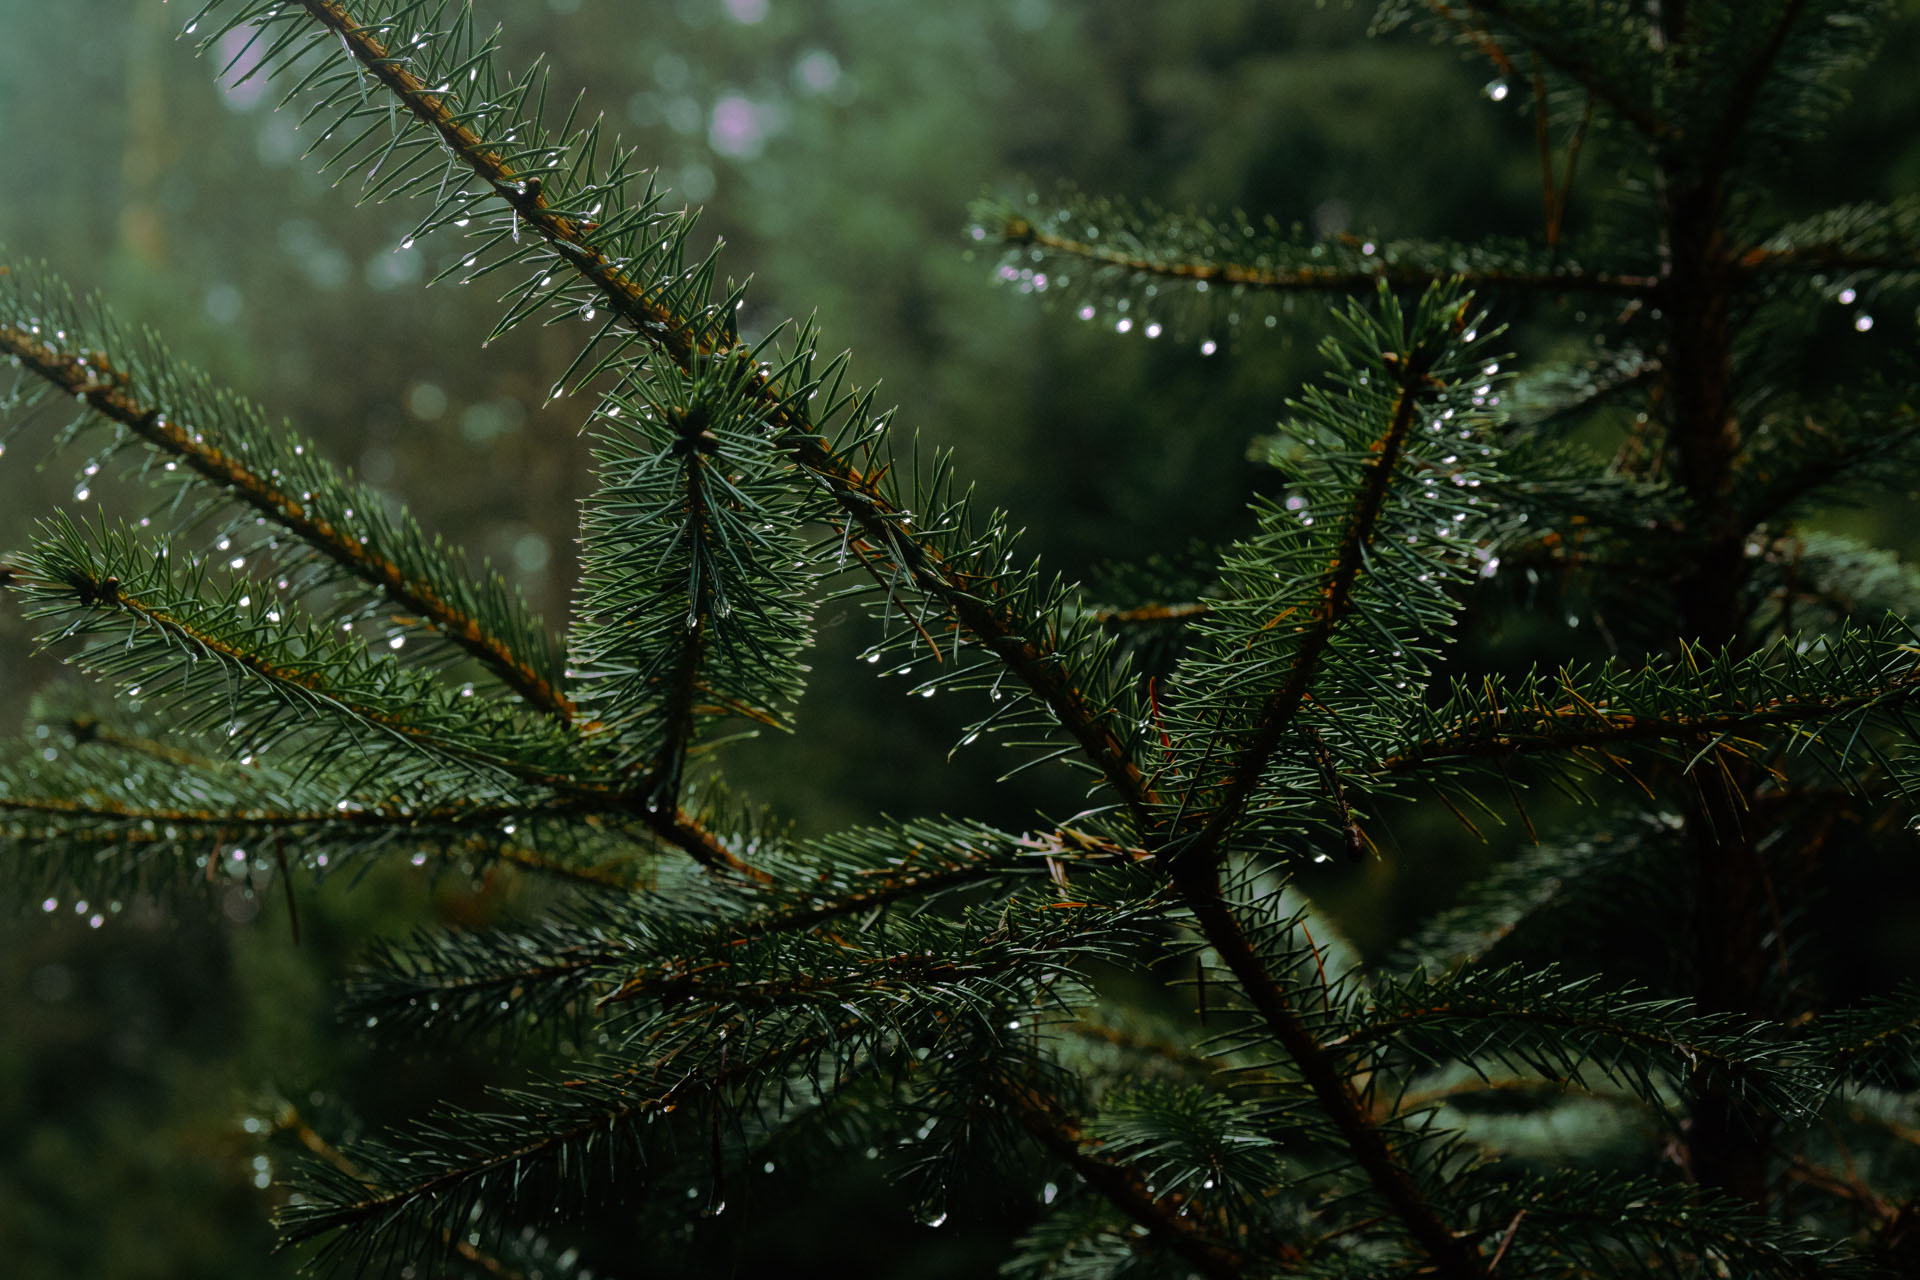 pine-needles-with-rain